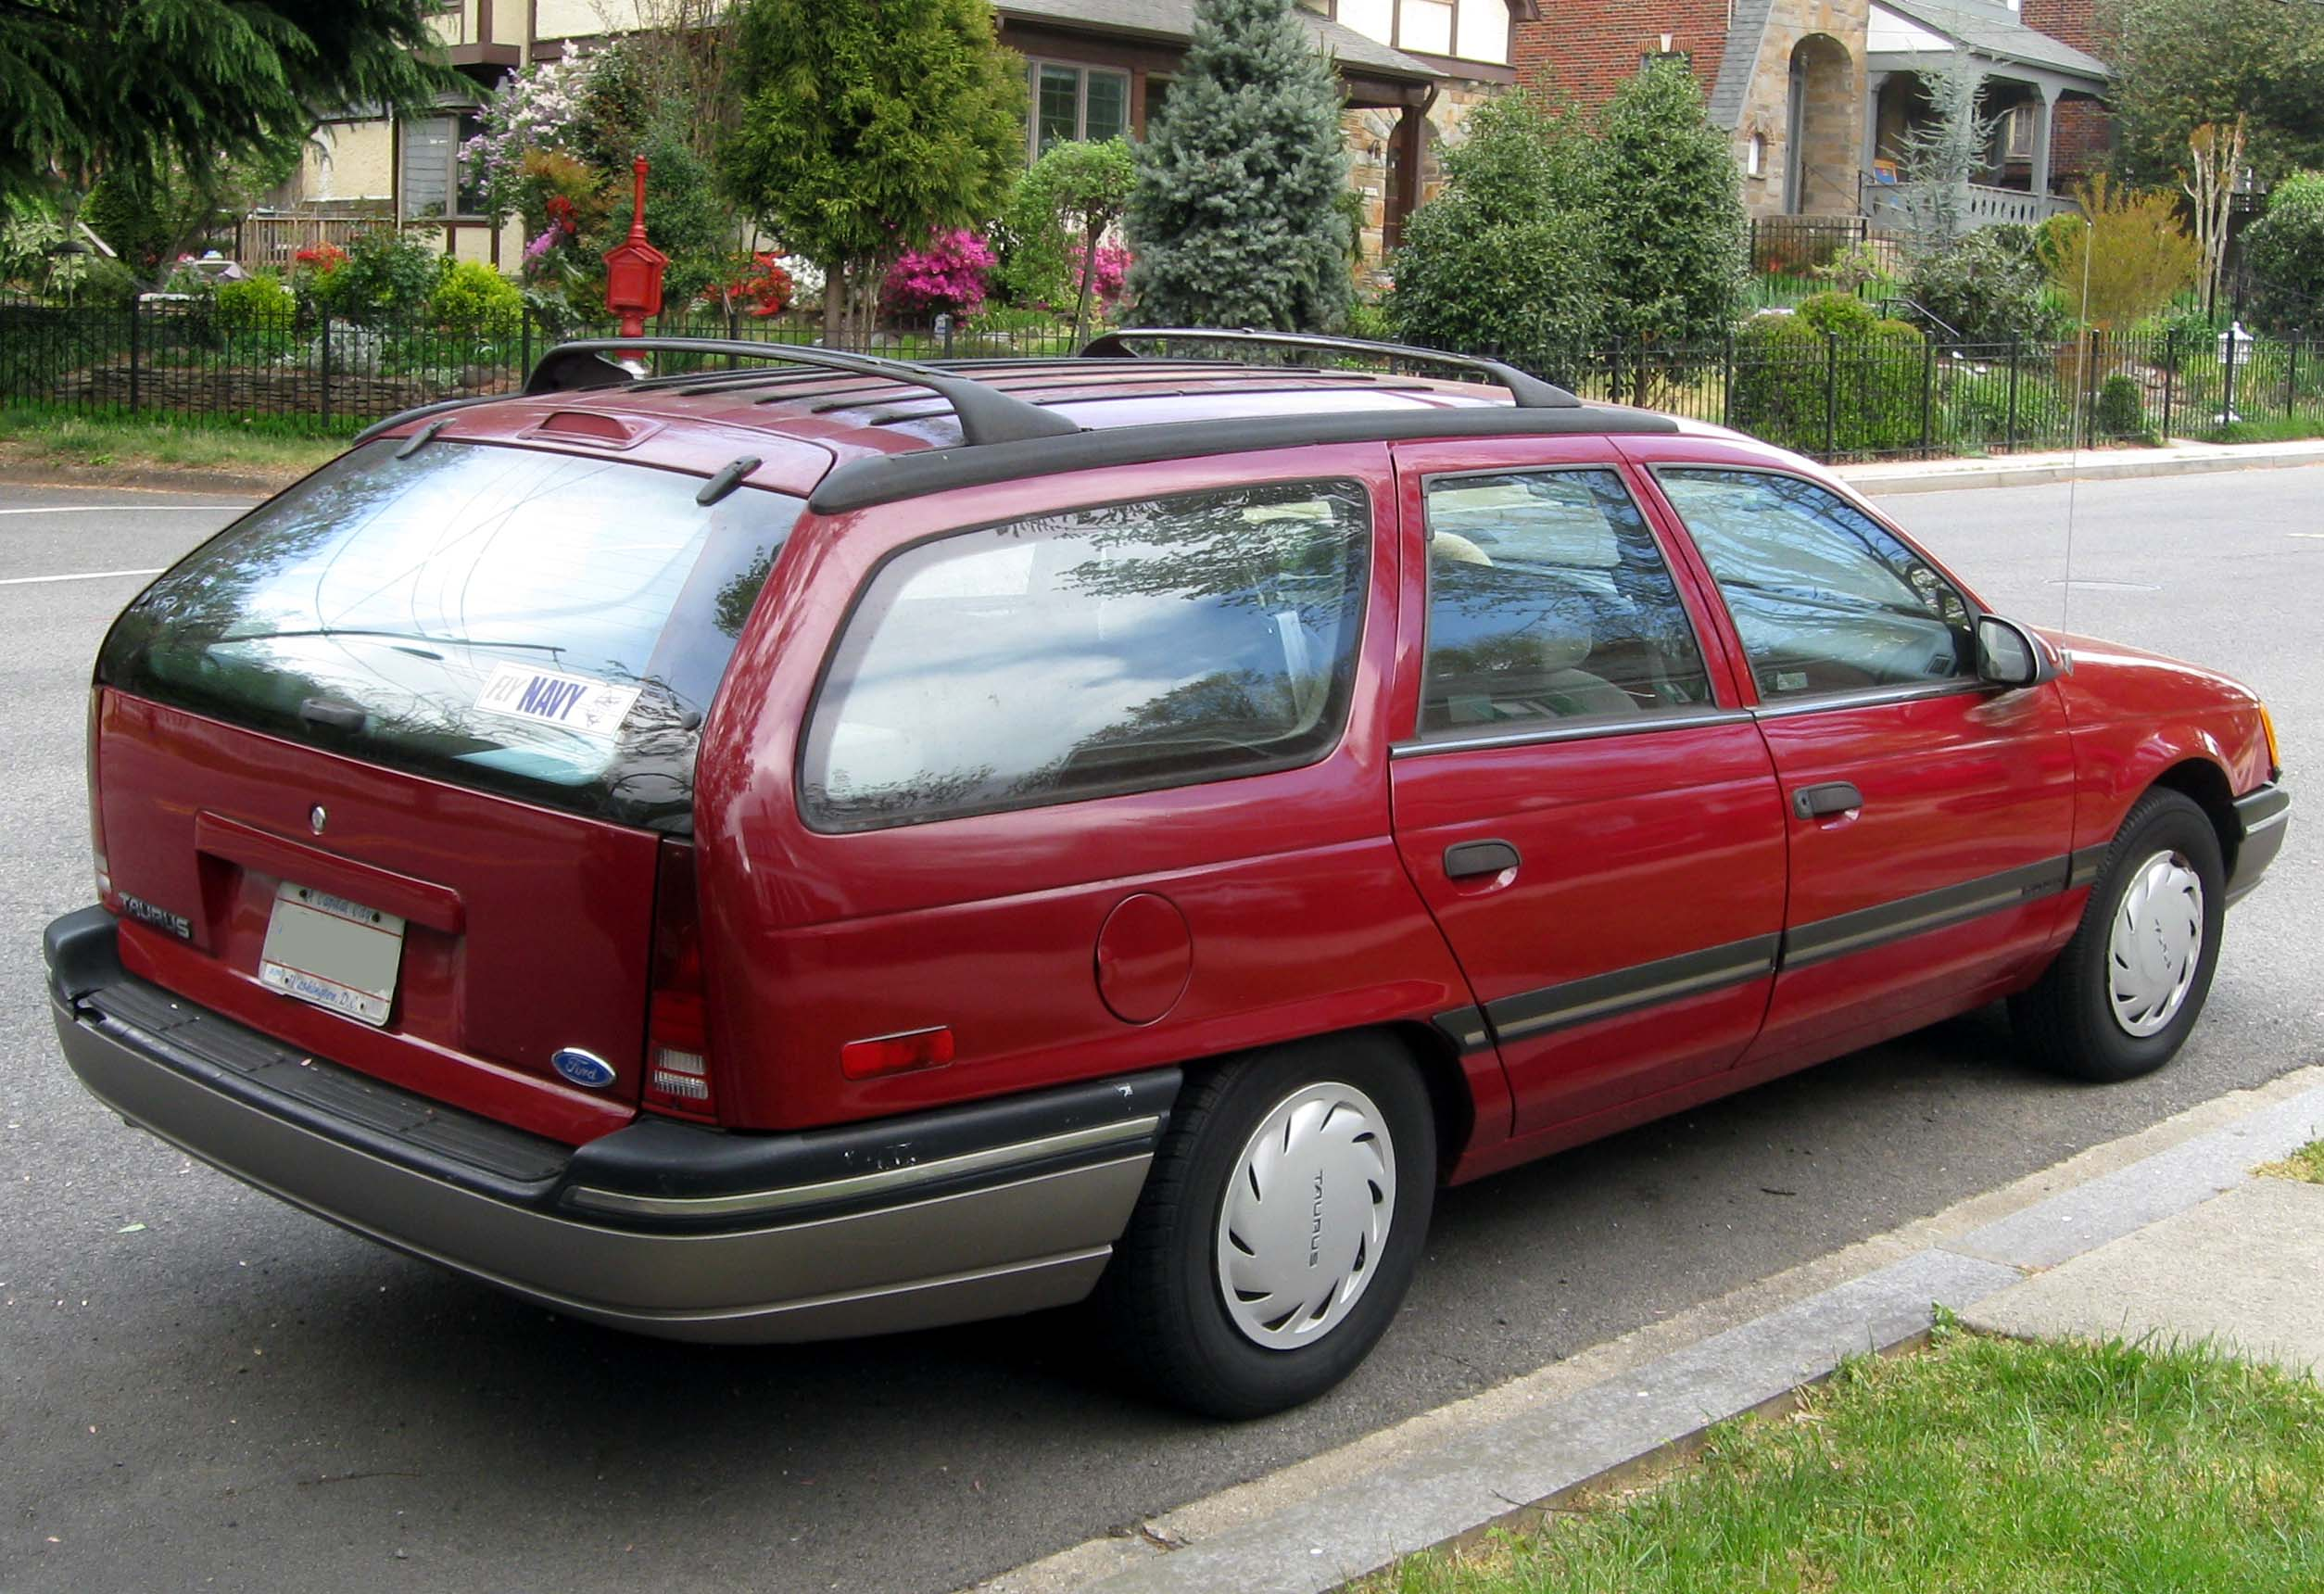 Ford Taurus Station Wagon 1991 Images 1